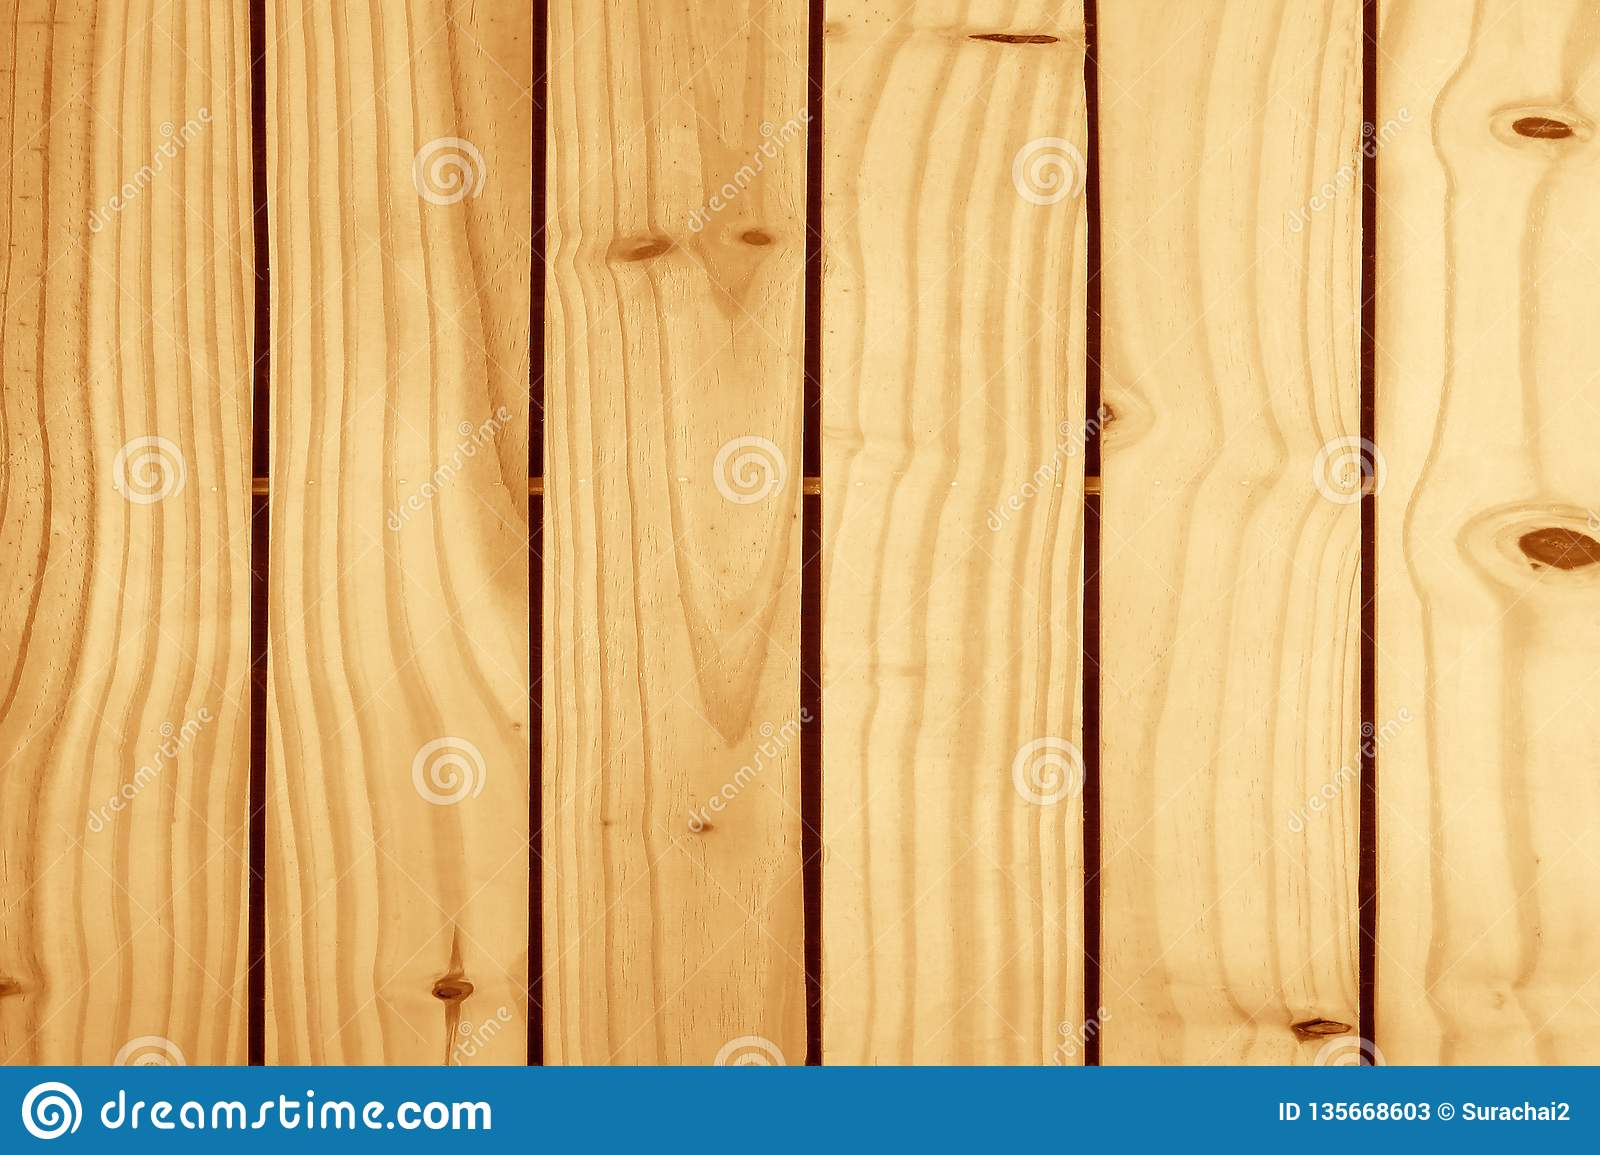 Wood plank texture background, Wooden wall